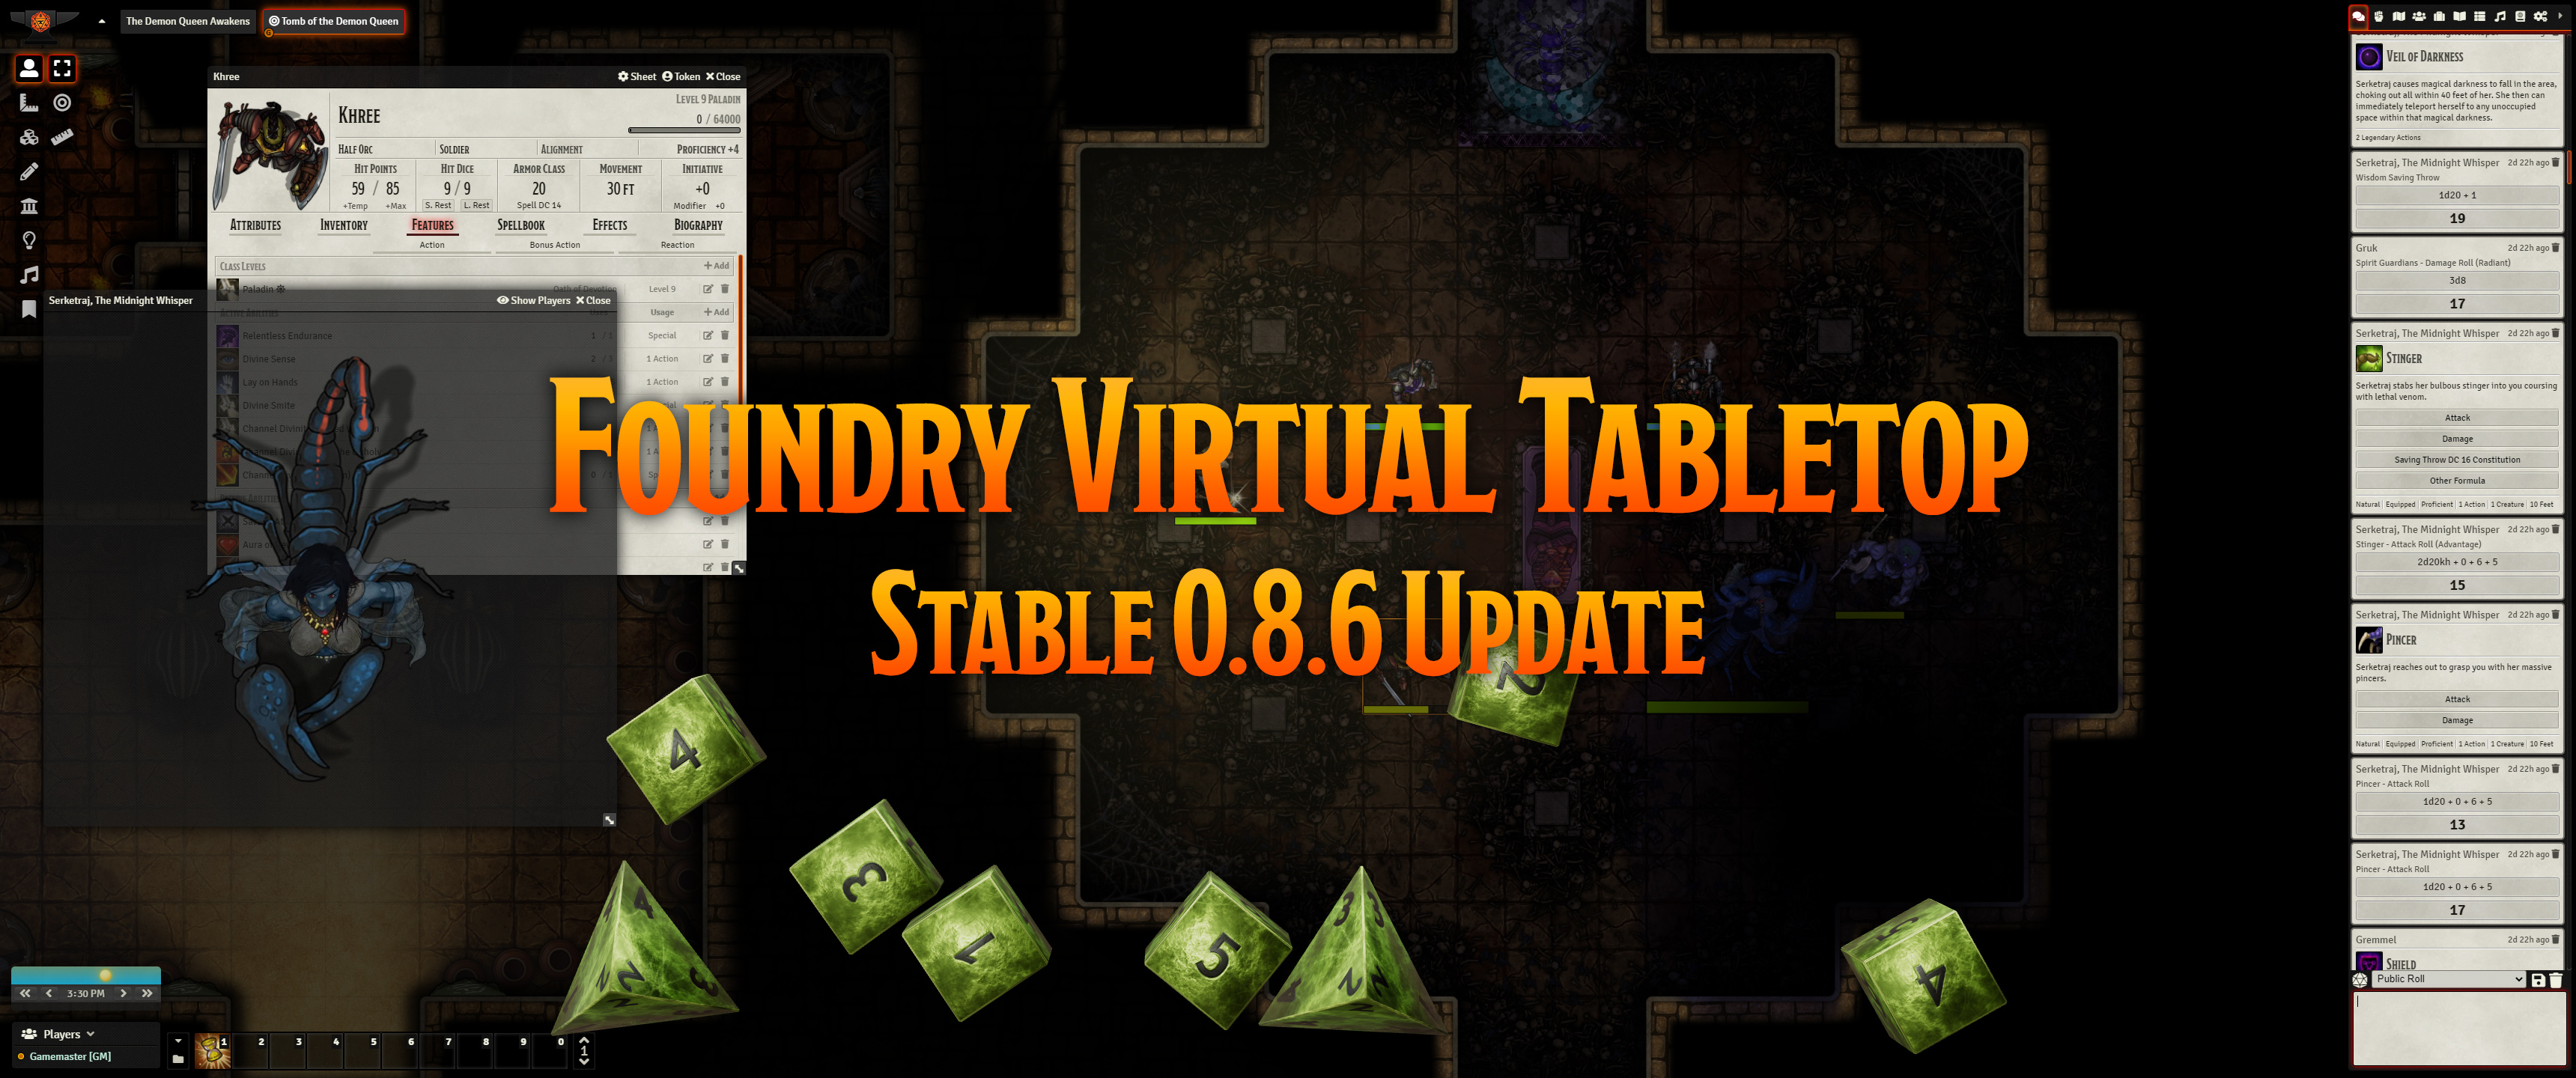 Release Notes for the Foundry Virtual Tabletop 0.8.6 version